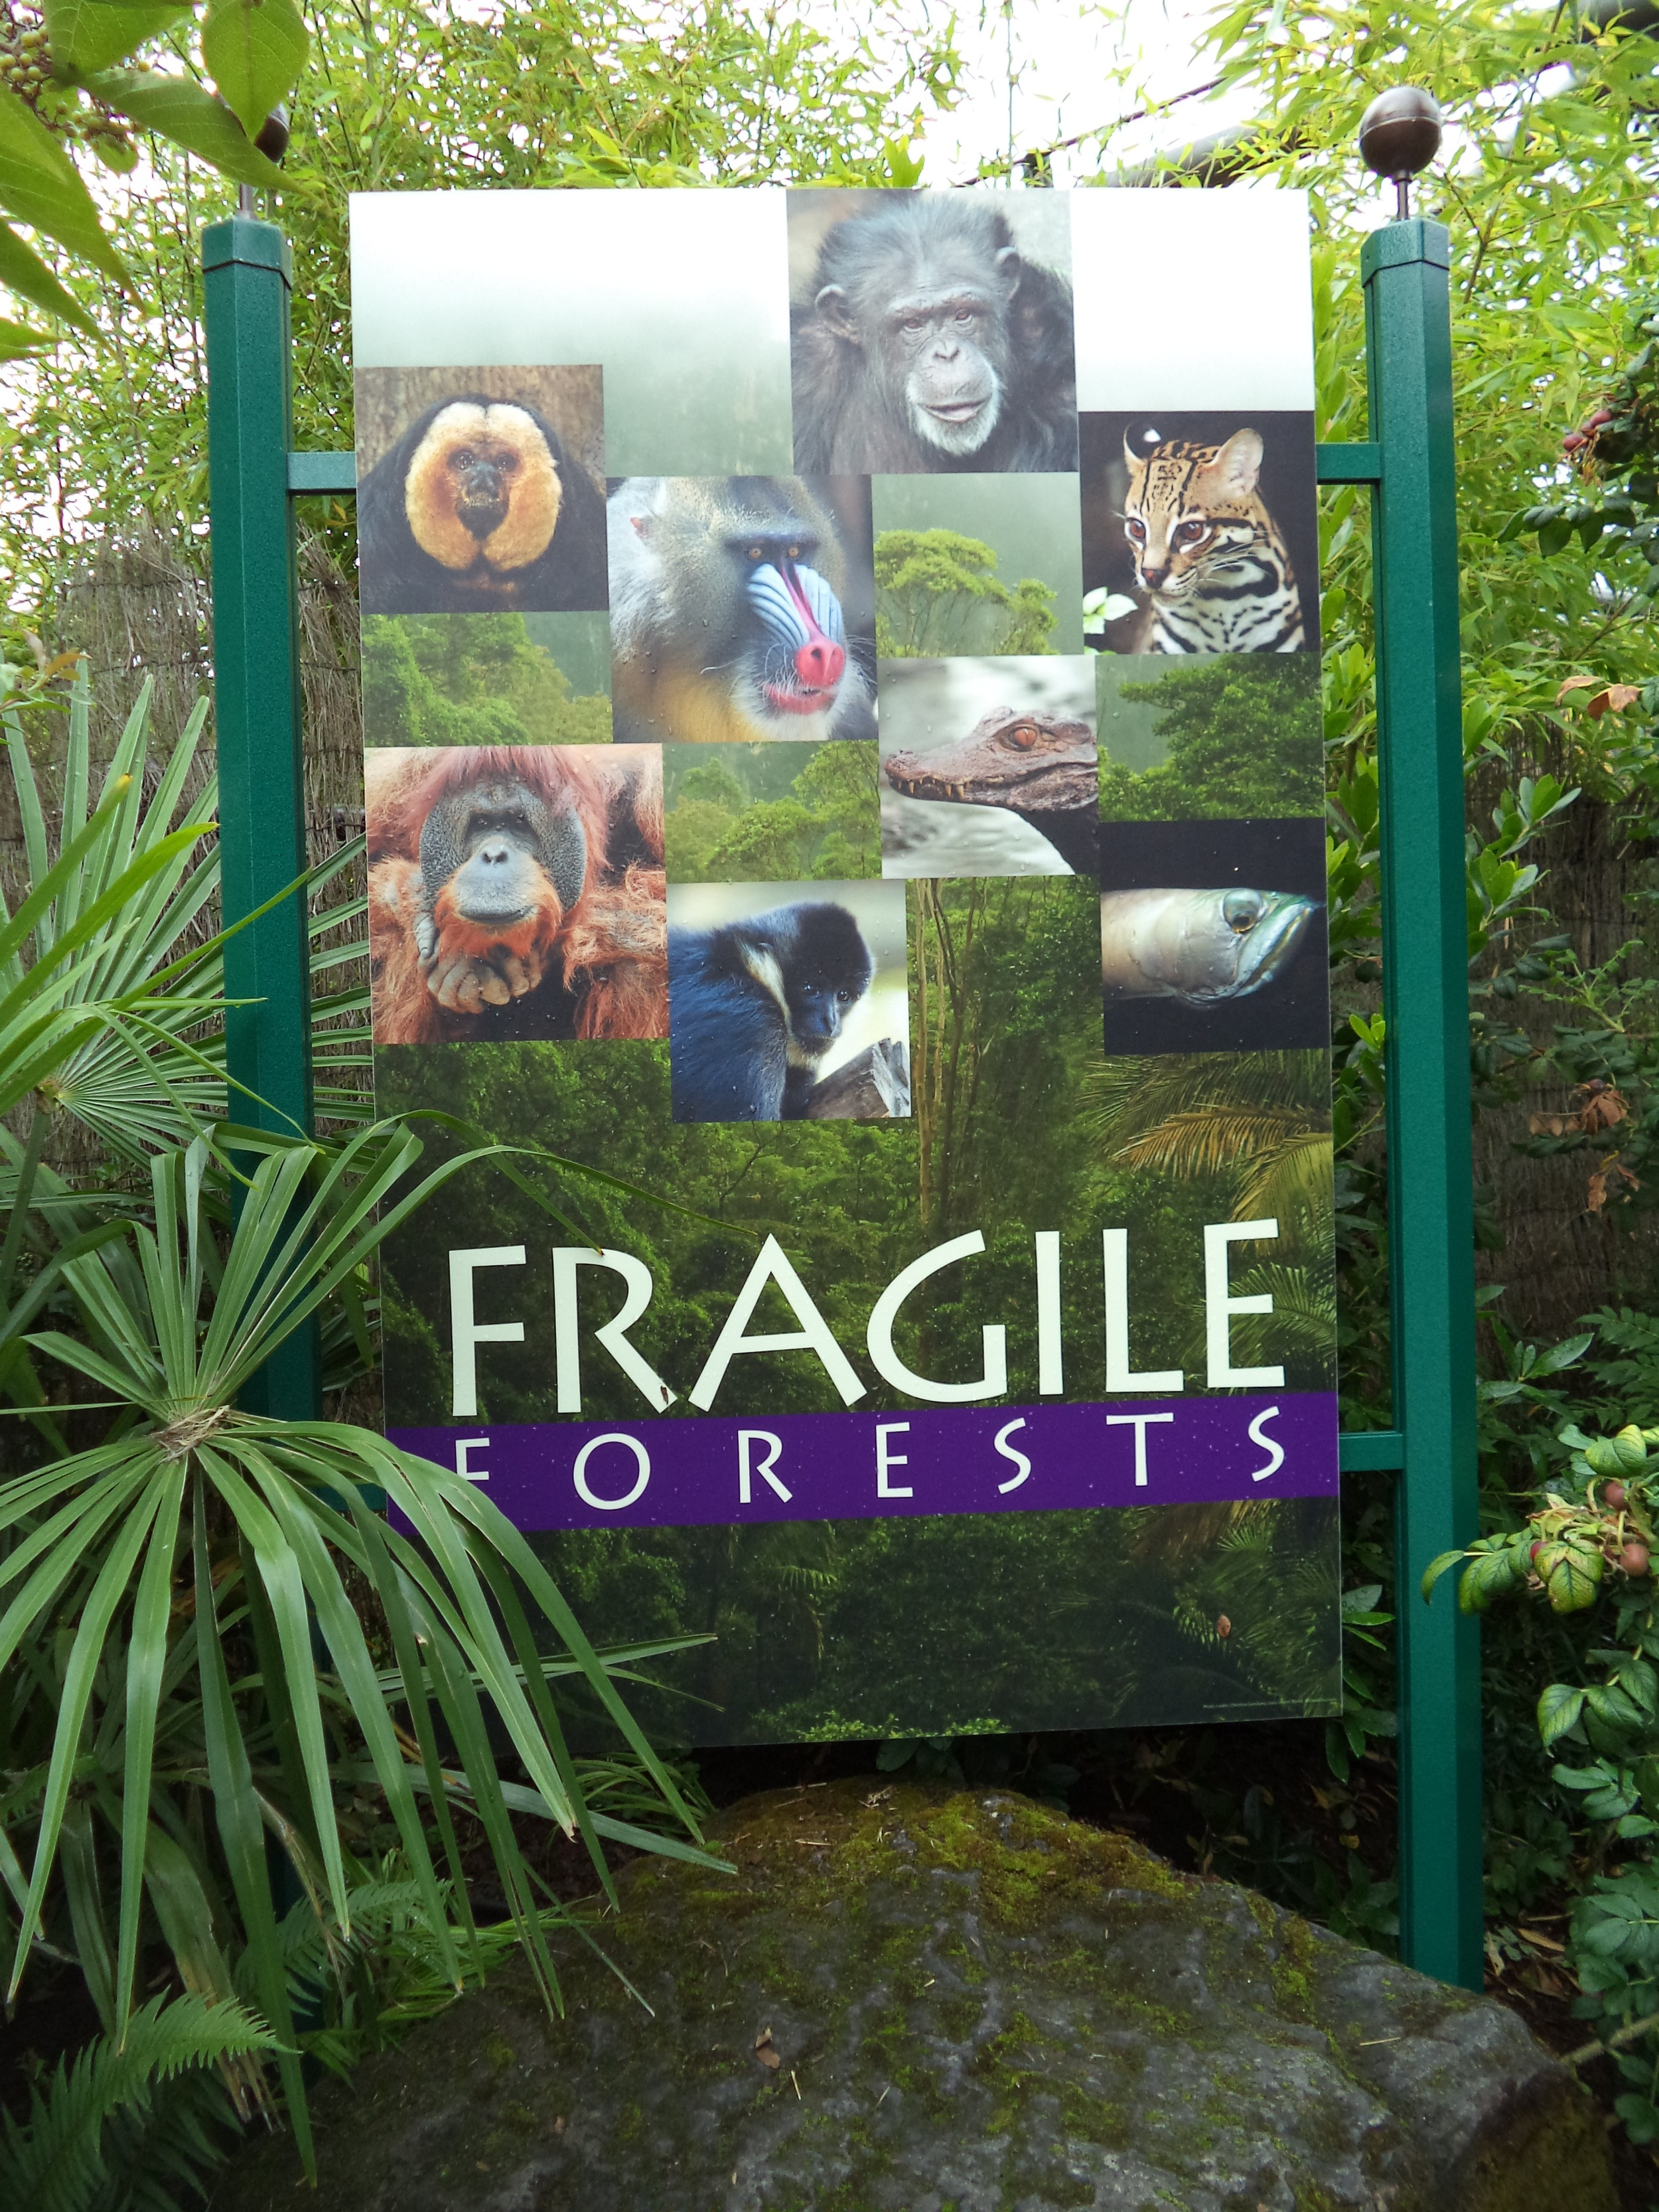 The Fragile Forests